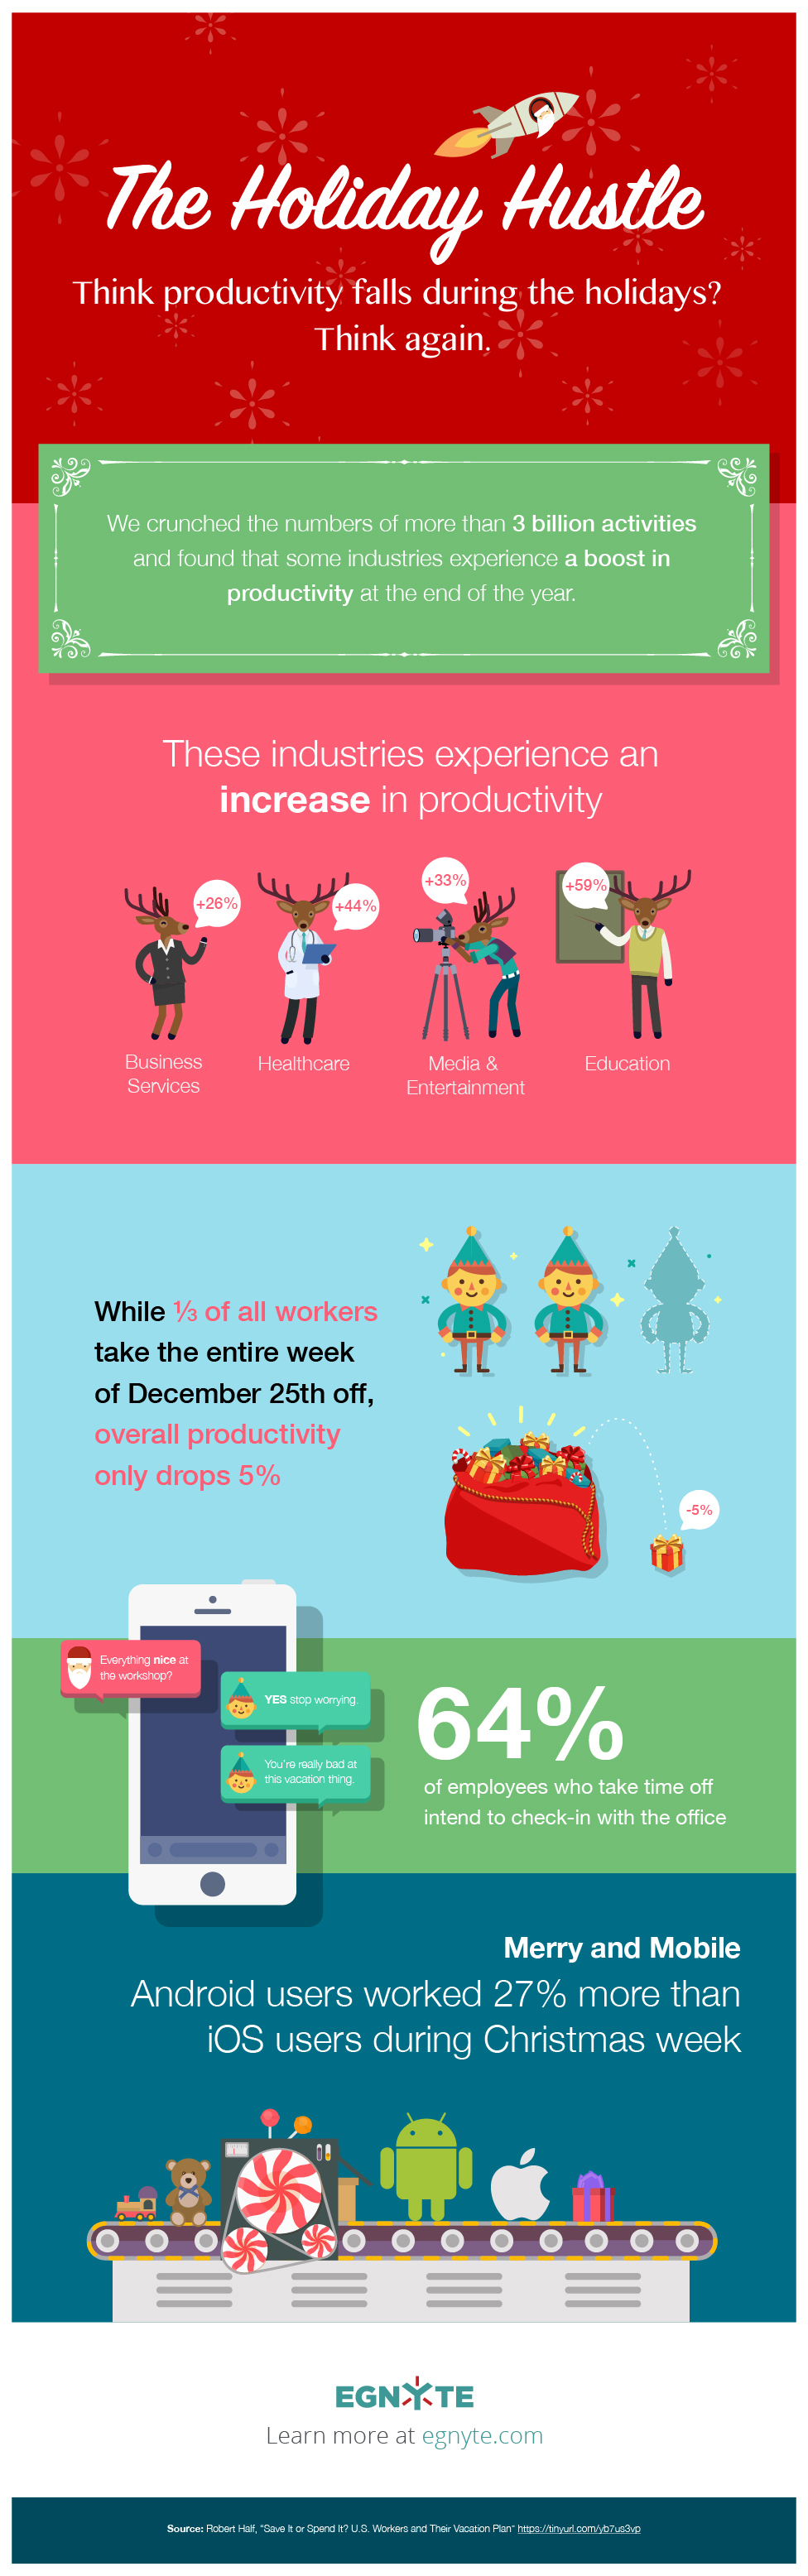 The Holiday Hustle - Egnyte Blog